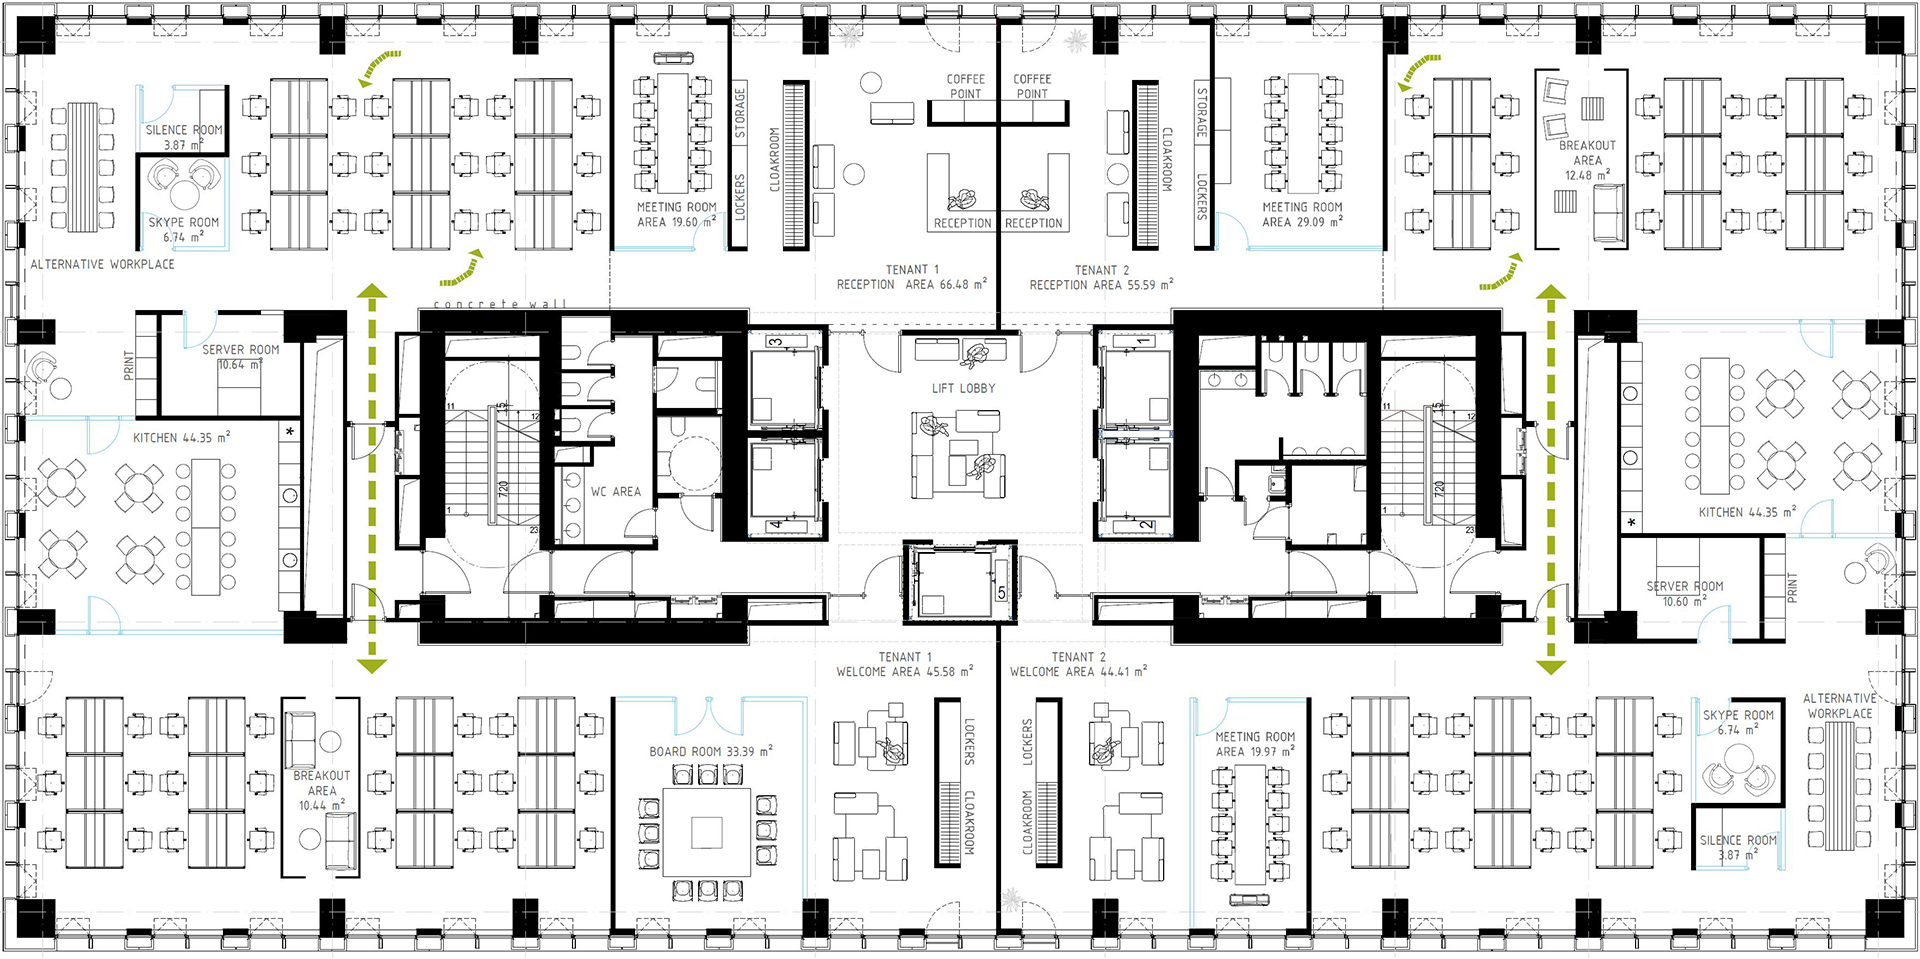 Office timpuri noi square for Office room plan